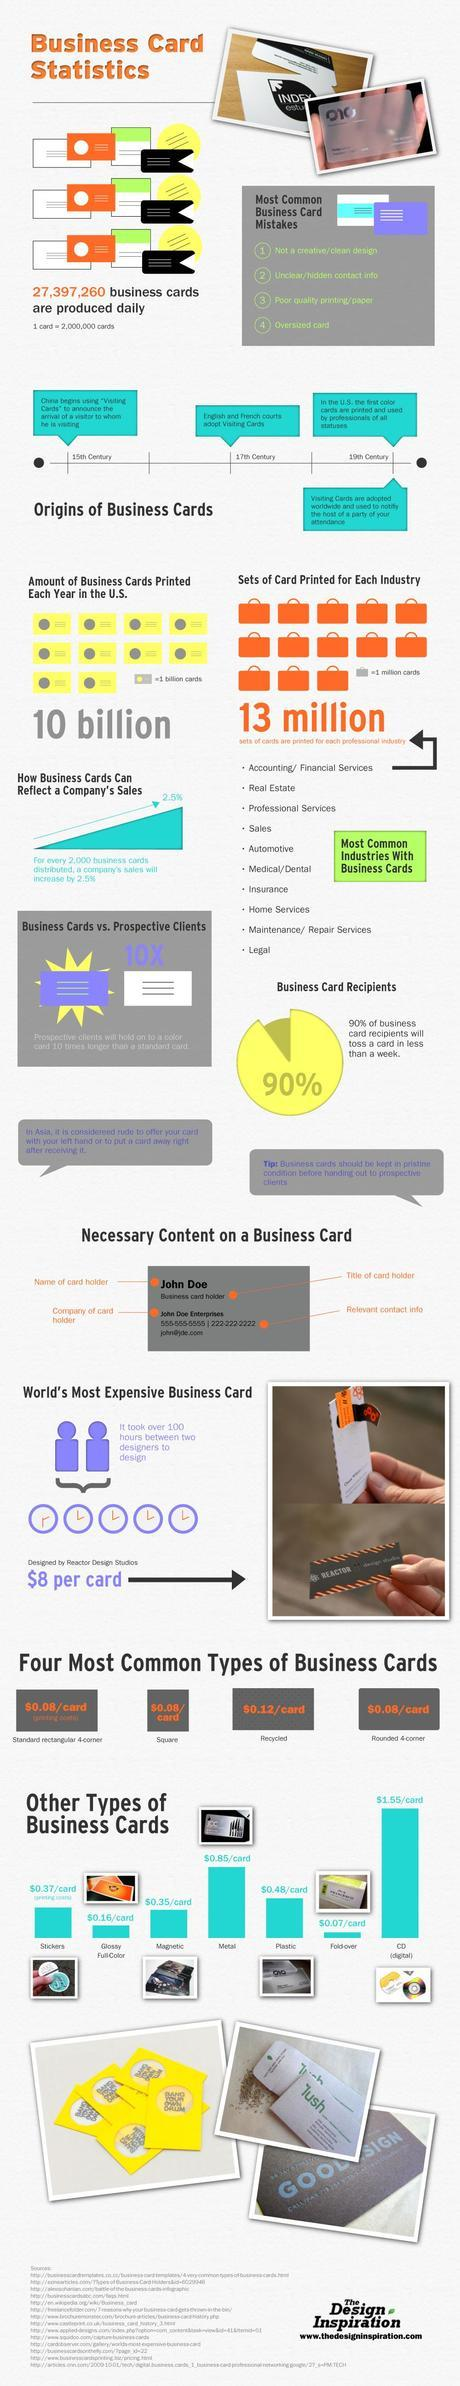 Business Cards Refuse to Die